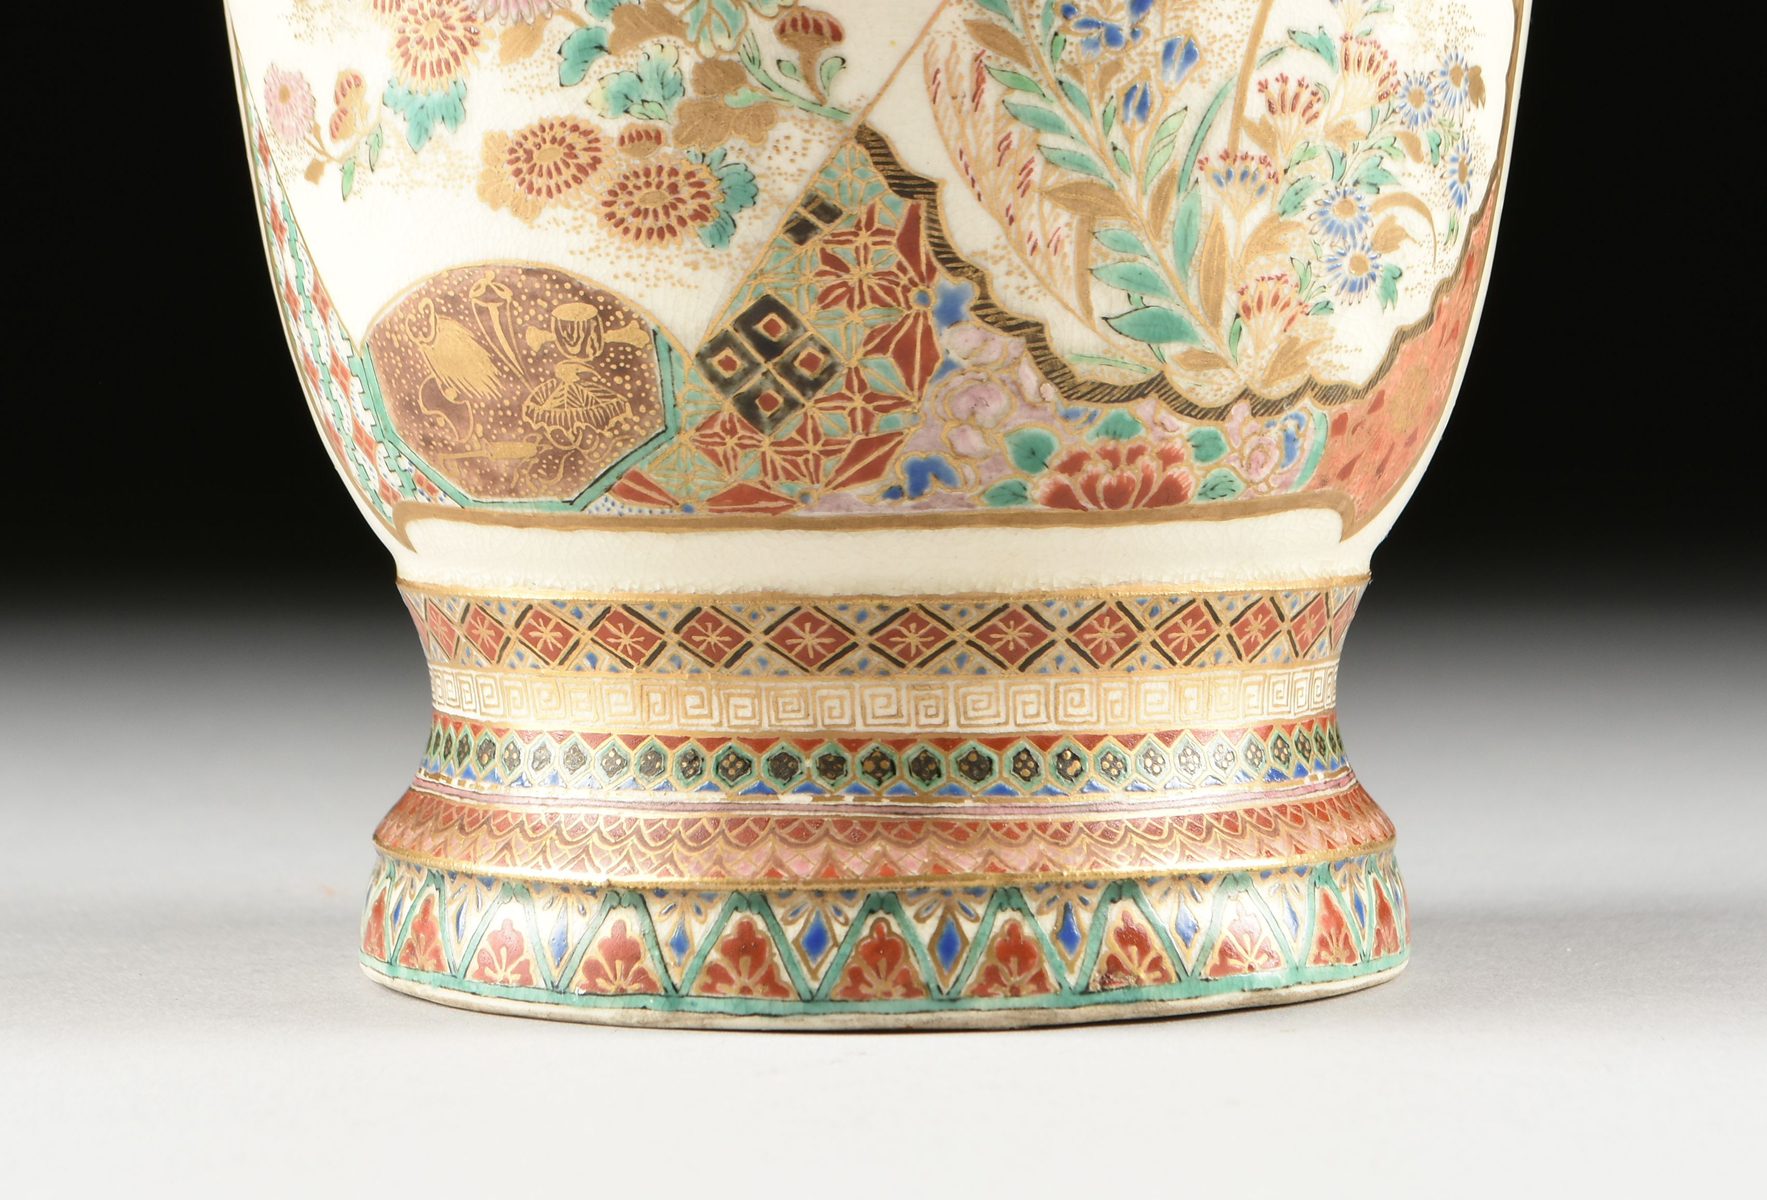 Lot 42 - A GROUP OF THREE SATSUMA PARCEL GILT AND POLYCHROME PAINTED EARTHENWARES, SIGNED, MEIJI PERIOD (